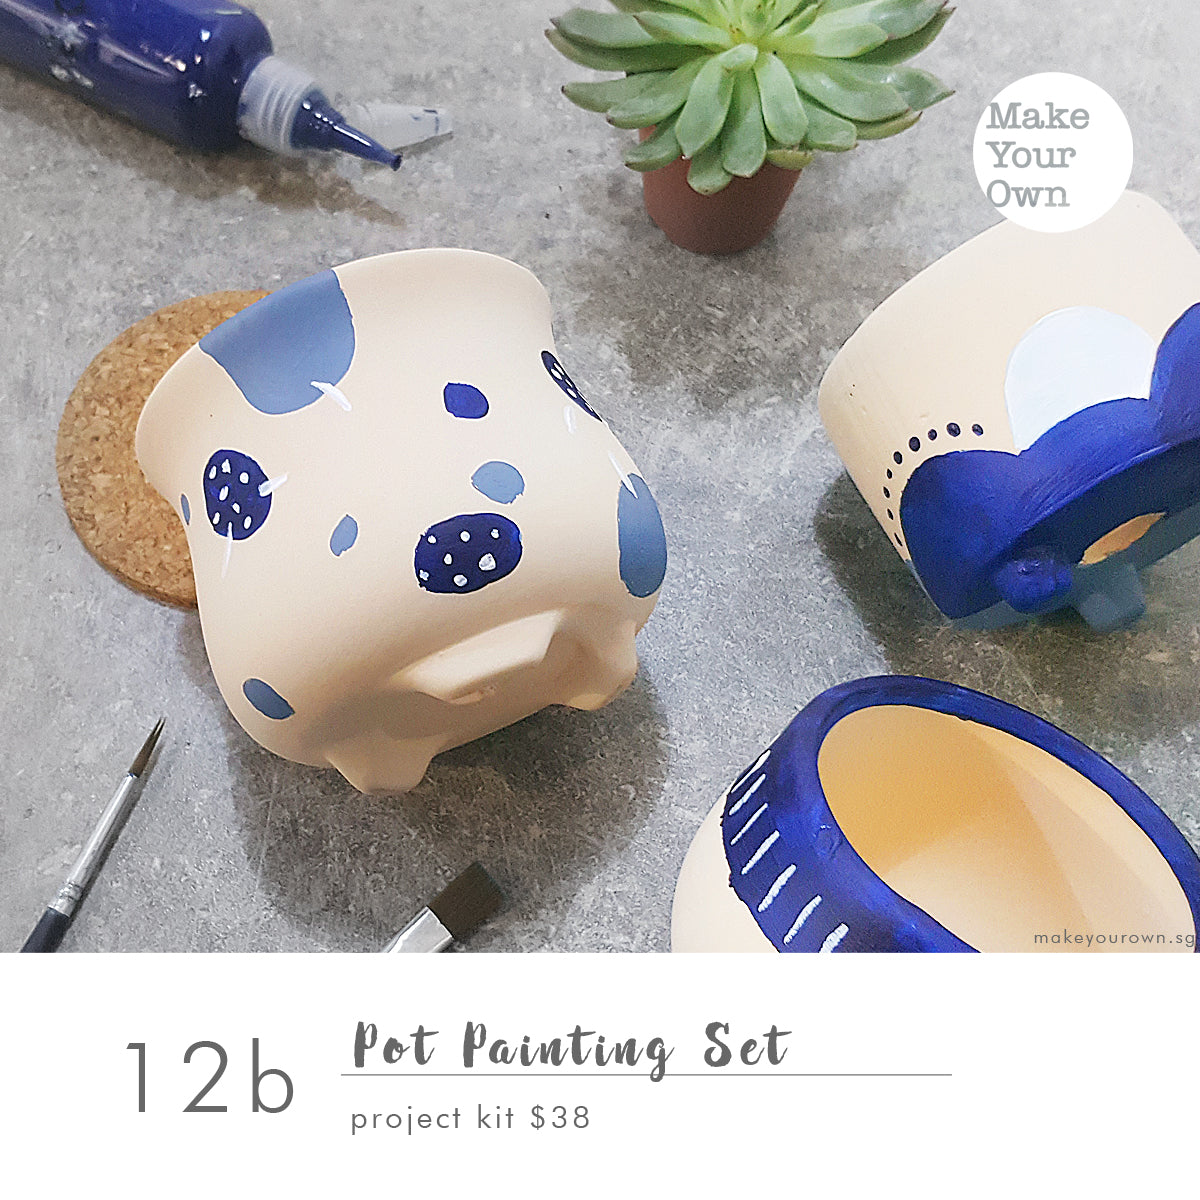 Pot Painting Set (Non-Guided) Project Kit Workshop (appointment basis)